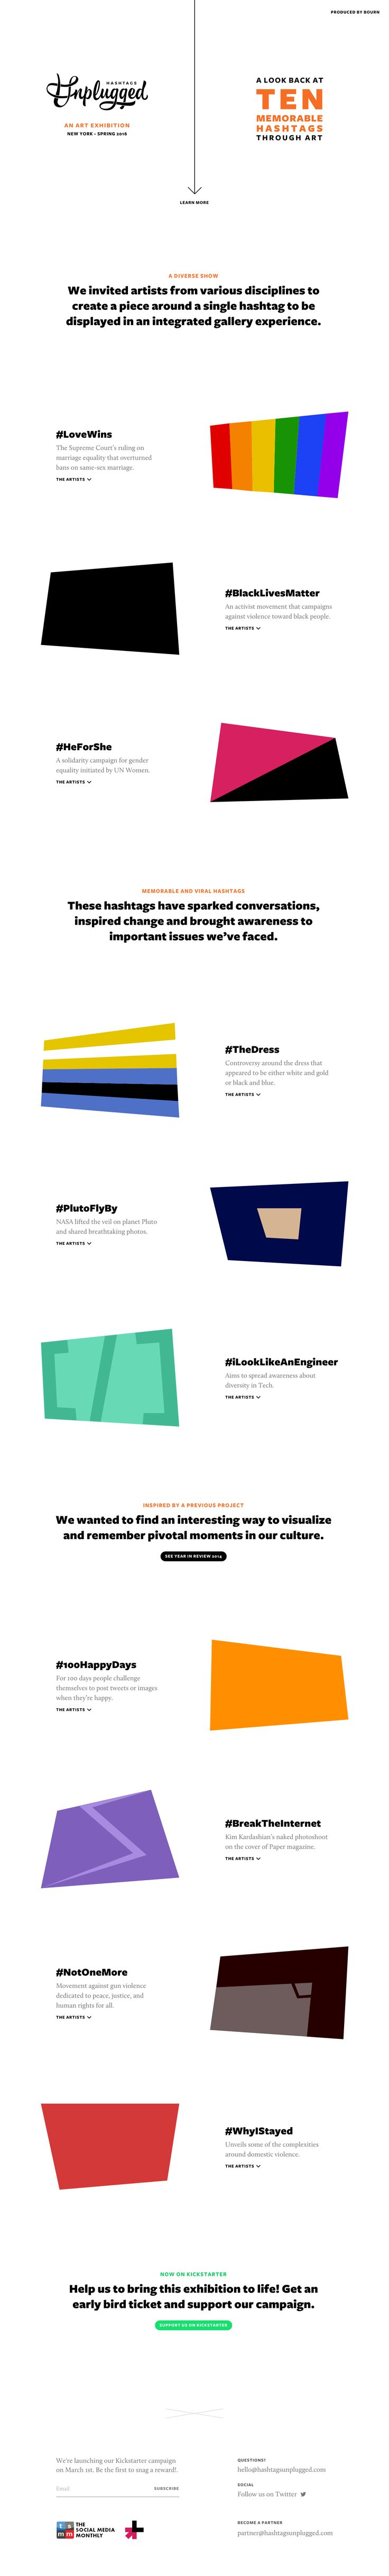 House design hashtags - One Pager For An Upcoming Ny Art Exhibition Called Hashtags Unplugged The Clean